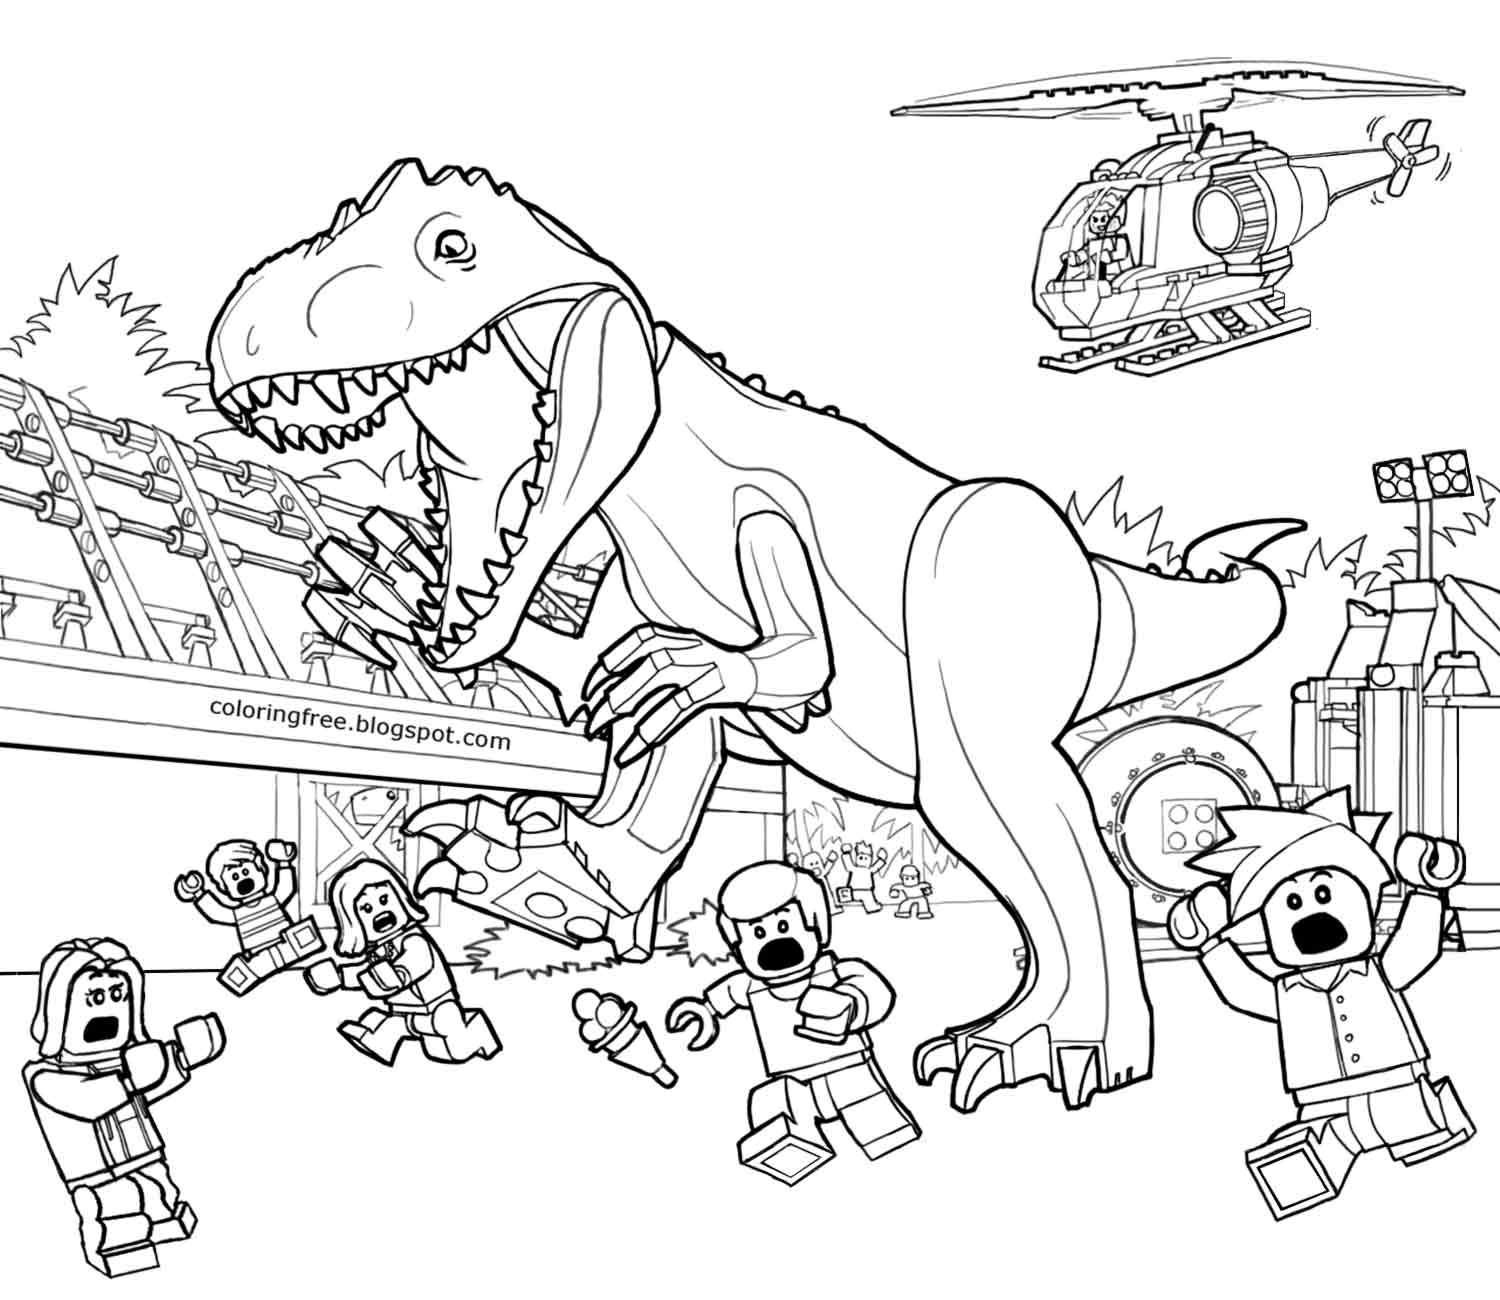 Printable coloring pages jurassic world - Download Paleontology Prehistoric Landscape Jurassic World Lego Dinosaurs Minifigure Movie Printable Sheets